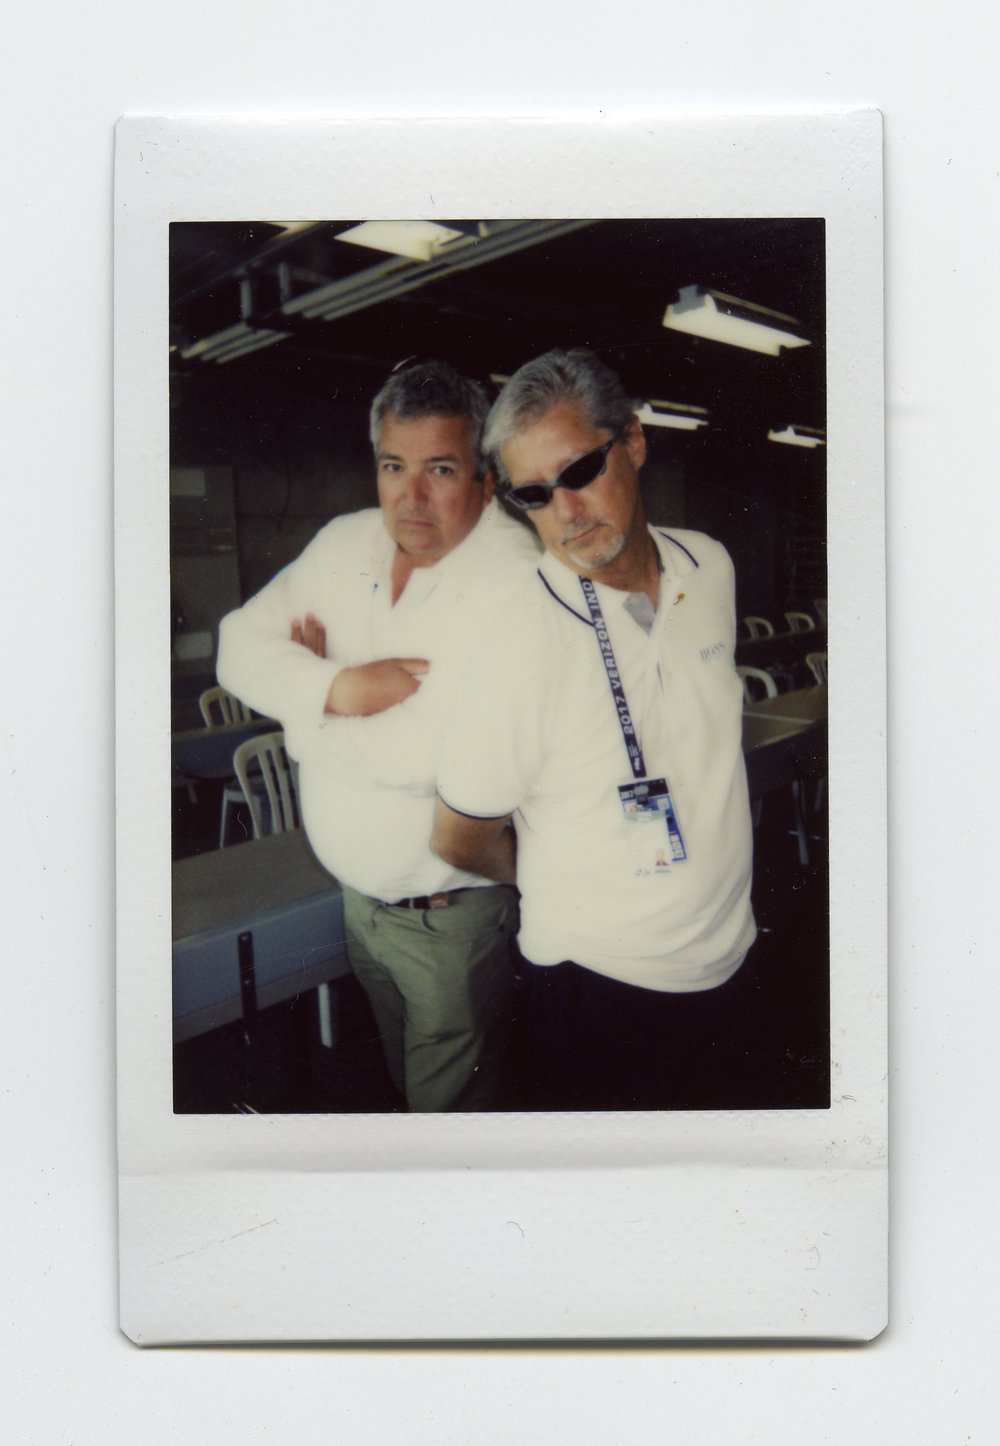 Mike Levitt & Steve Swope - Shot on Fujifilm Neo90 Camera with Fuji Instant Film - Indianapolis Motor Speedway